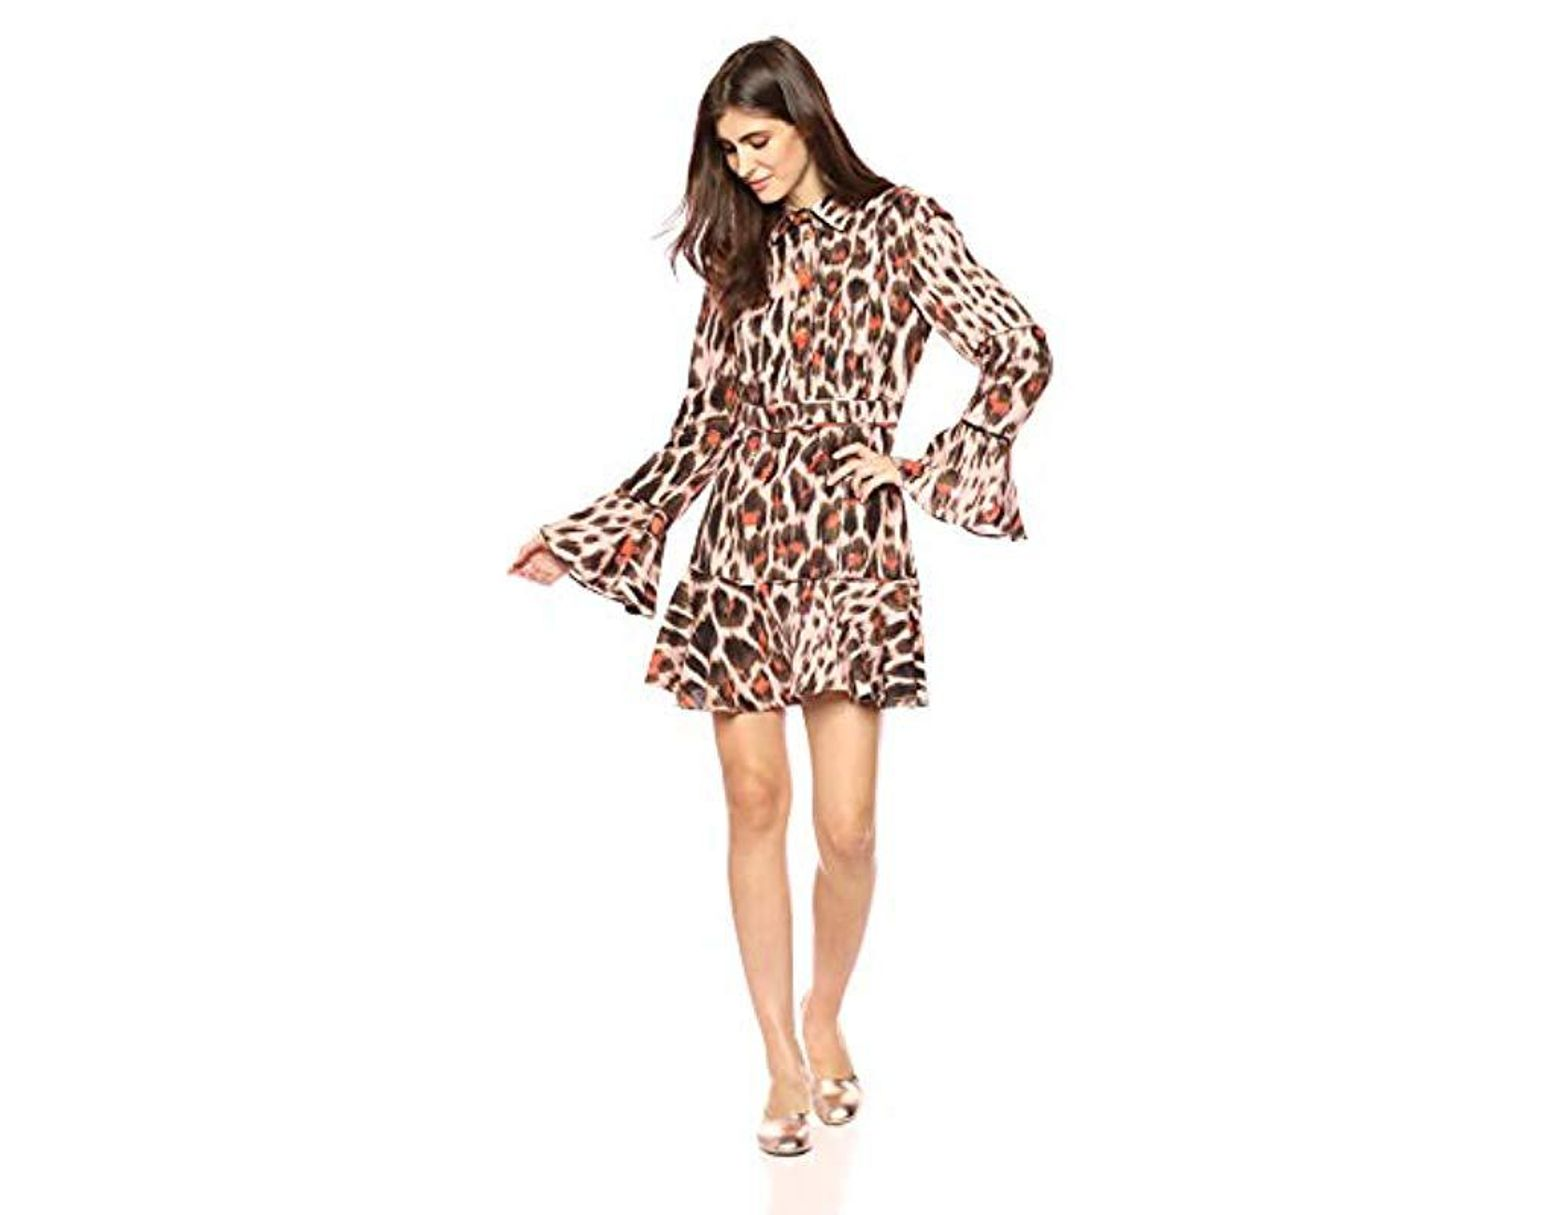 bac2f0986379 C/meo Collective Actuate Leopard Print Long Sleeve Collared Mini Dress -  Lyst